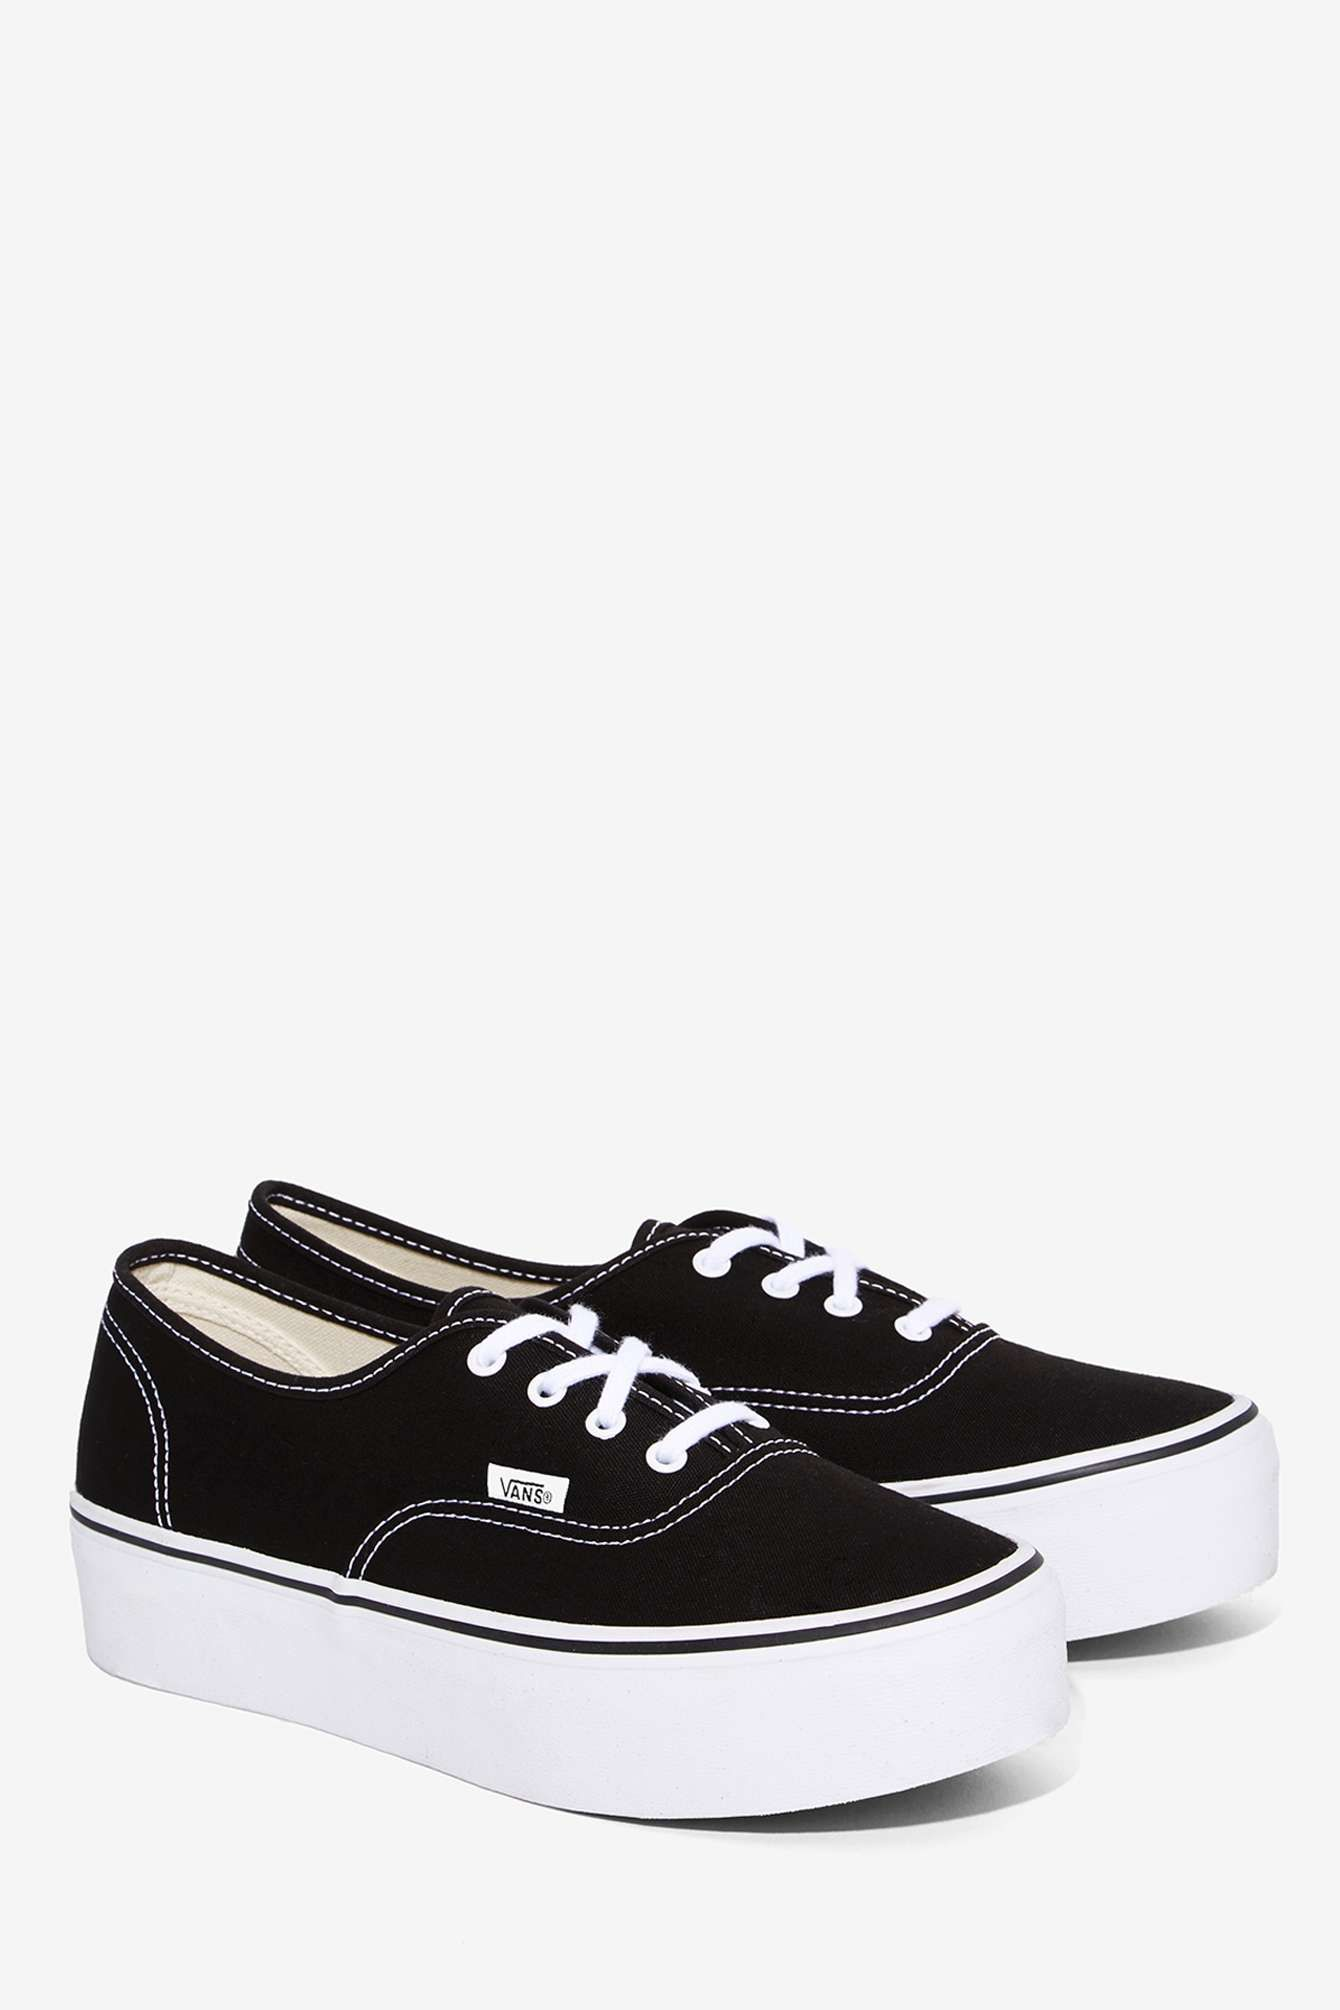 Vans Authentic Platform Sneaker - Black  700ebdce82